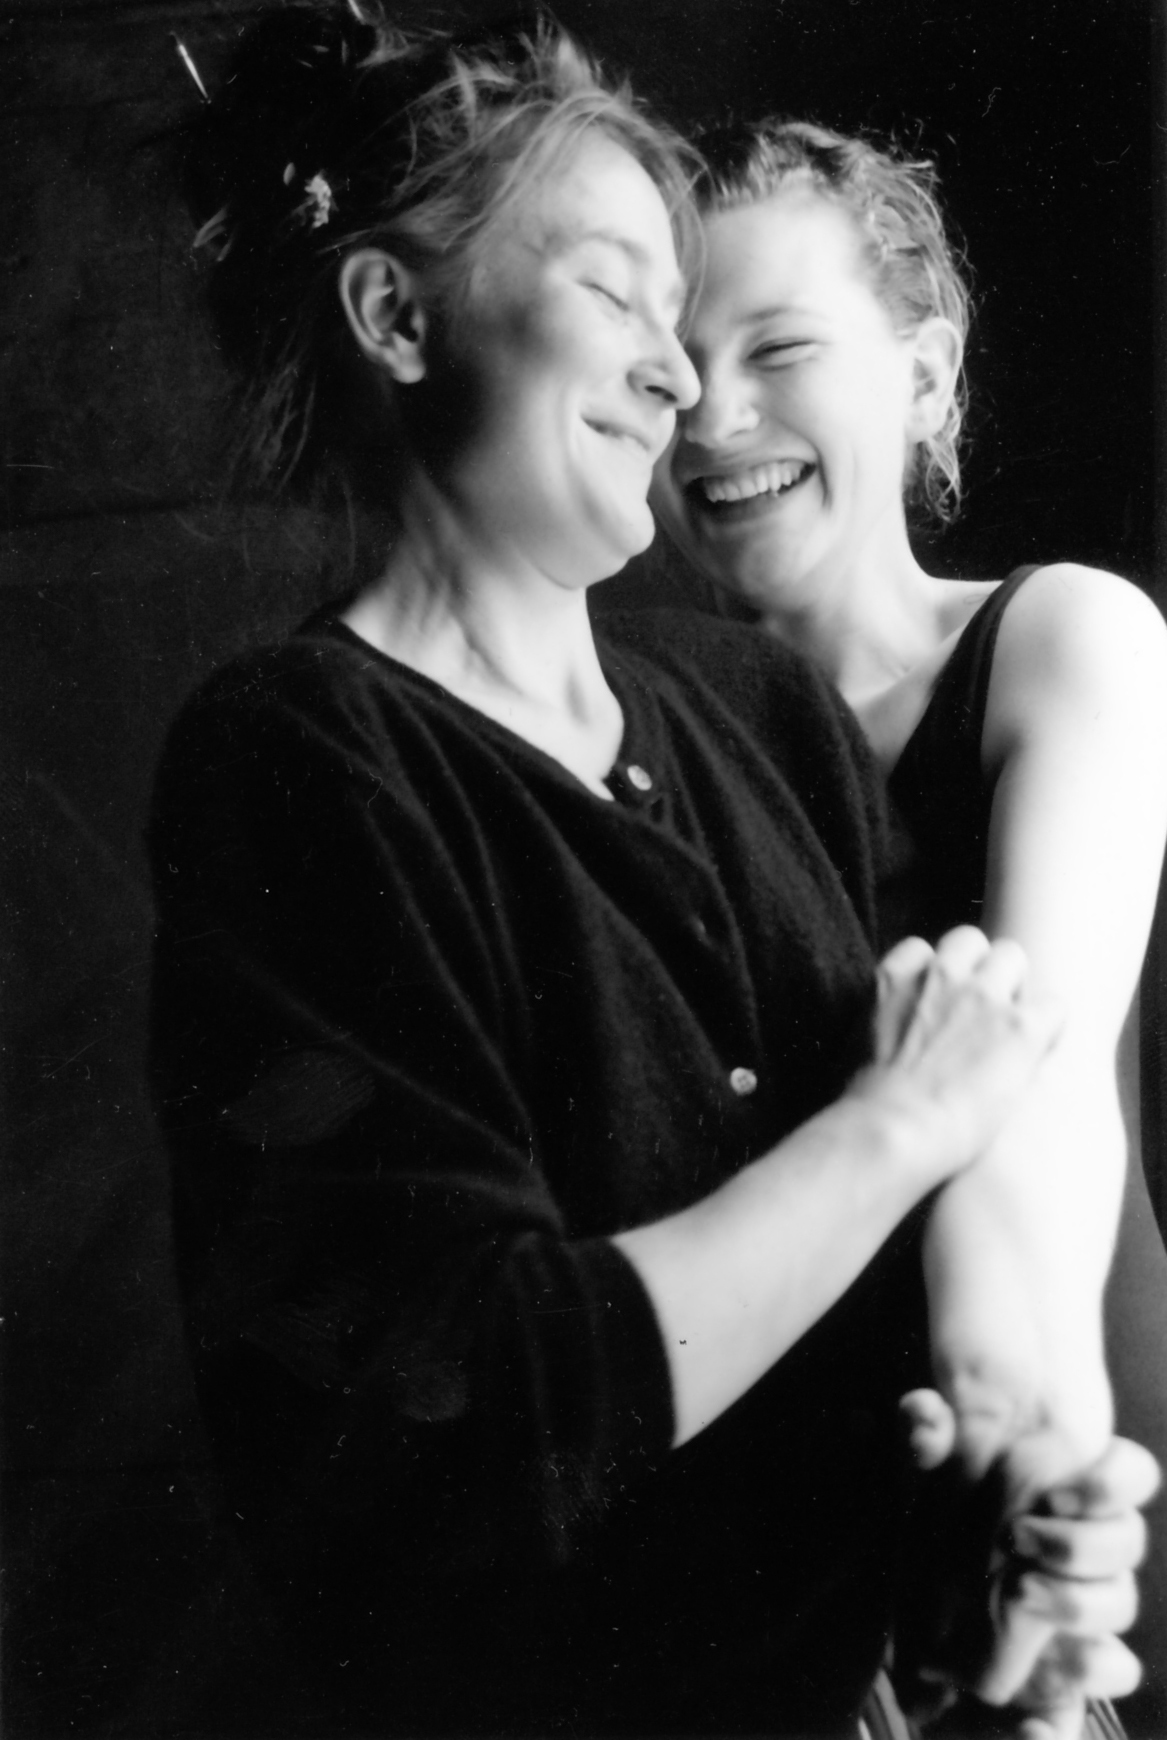 Cate Blanchett and Caroline Lee in a performance